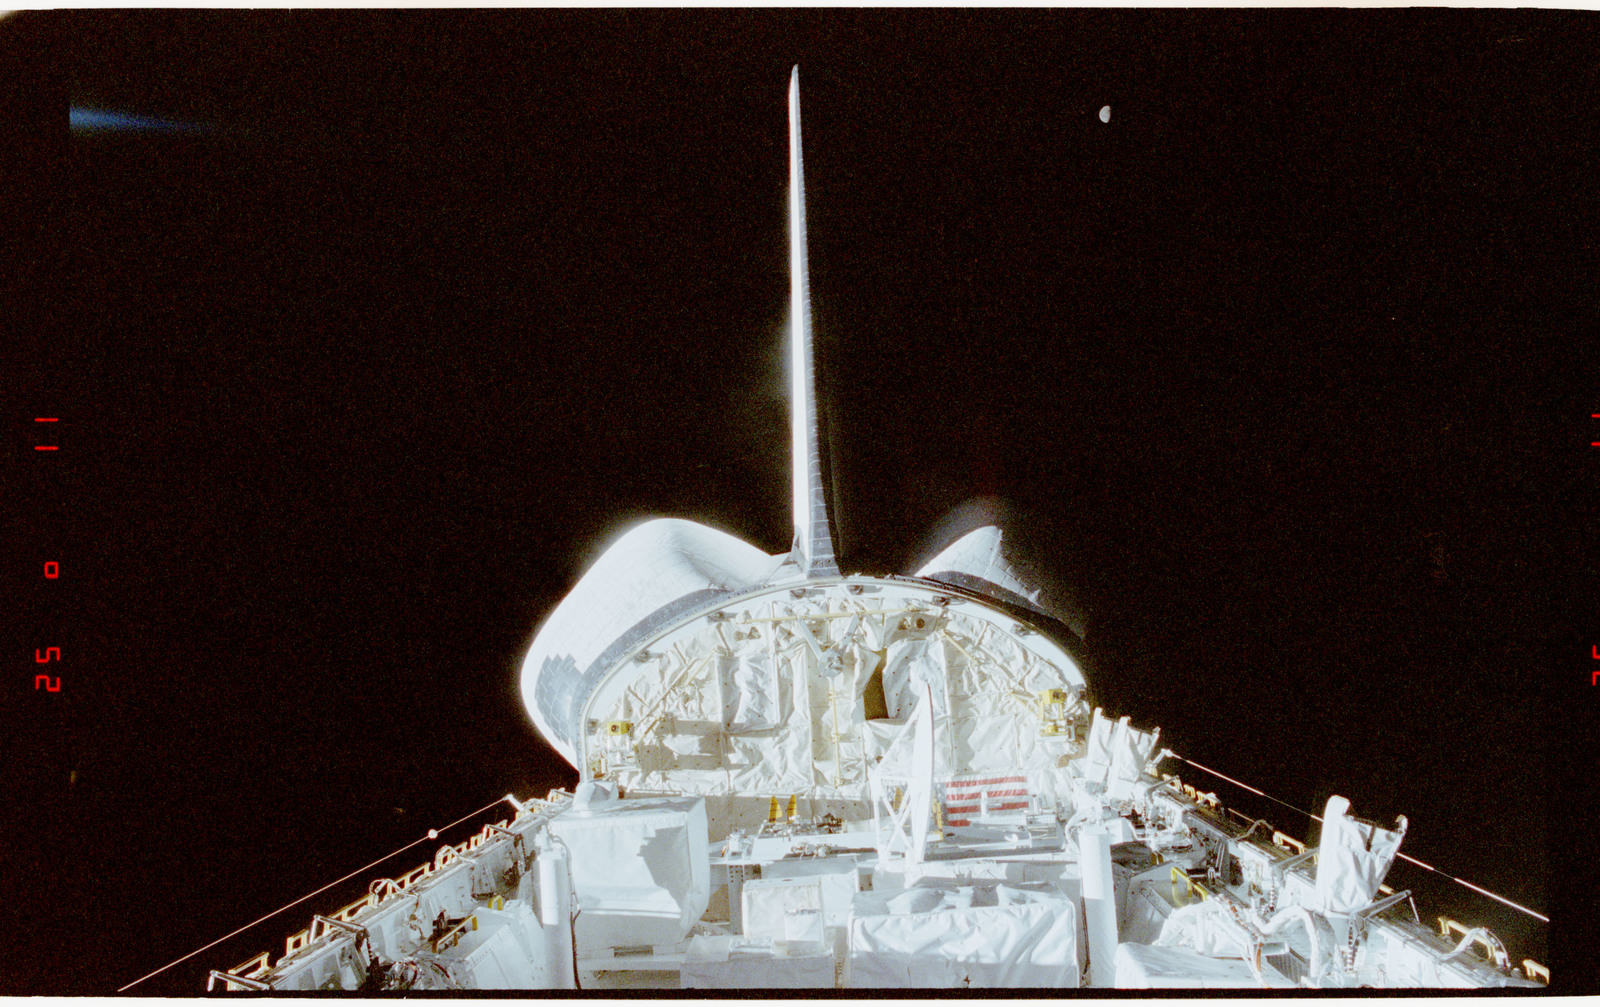 STS056-28-035 - STS-056 - Views of the payload bay, Earth limb with day/night terminator, and moon.